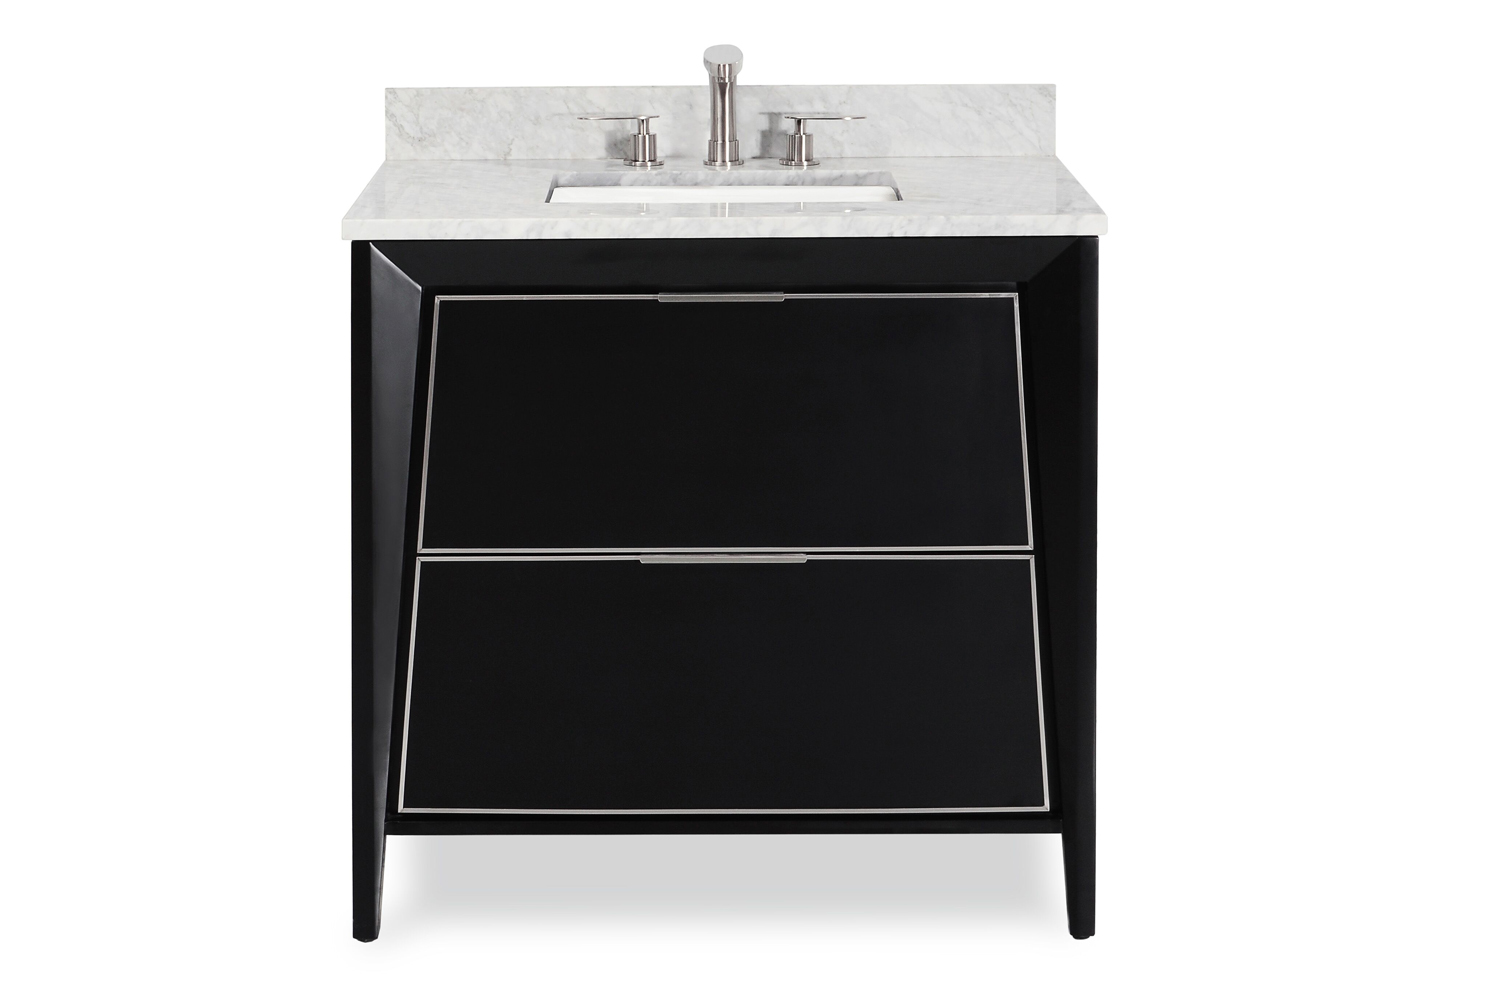 This furniture-style vanity is crafted of solid wood throughout with no MDF or chipboard.